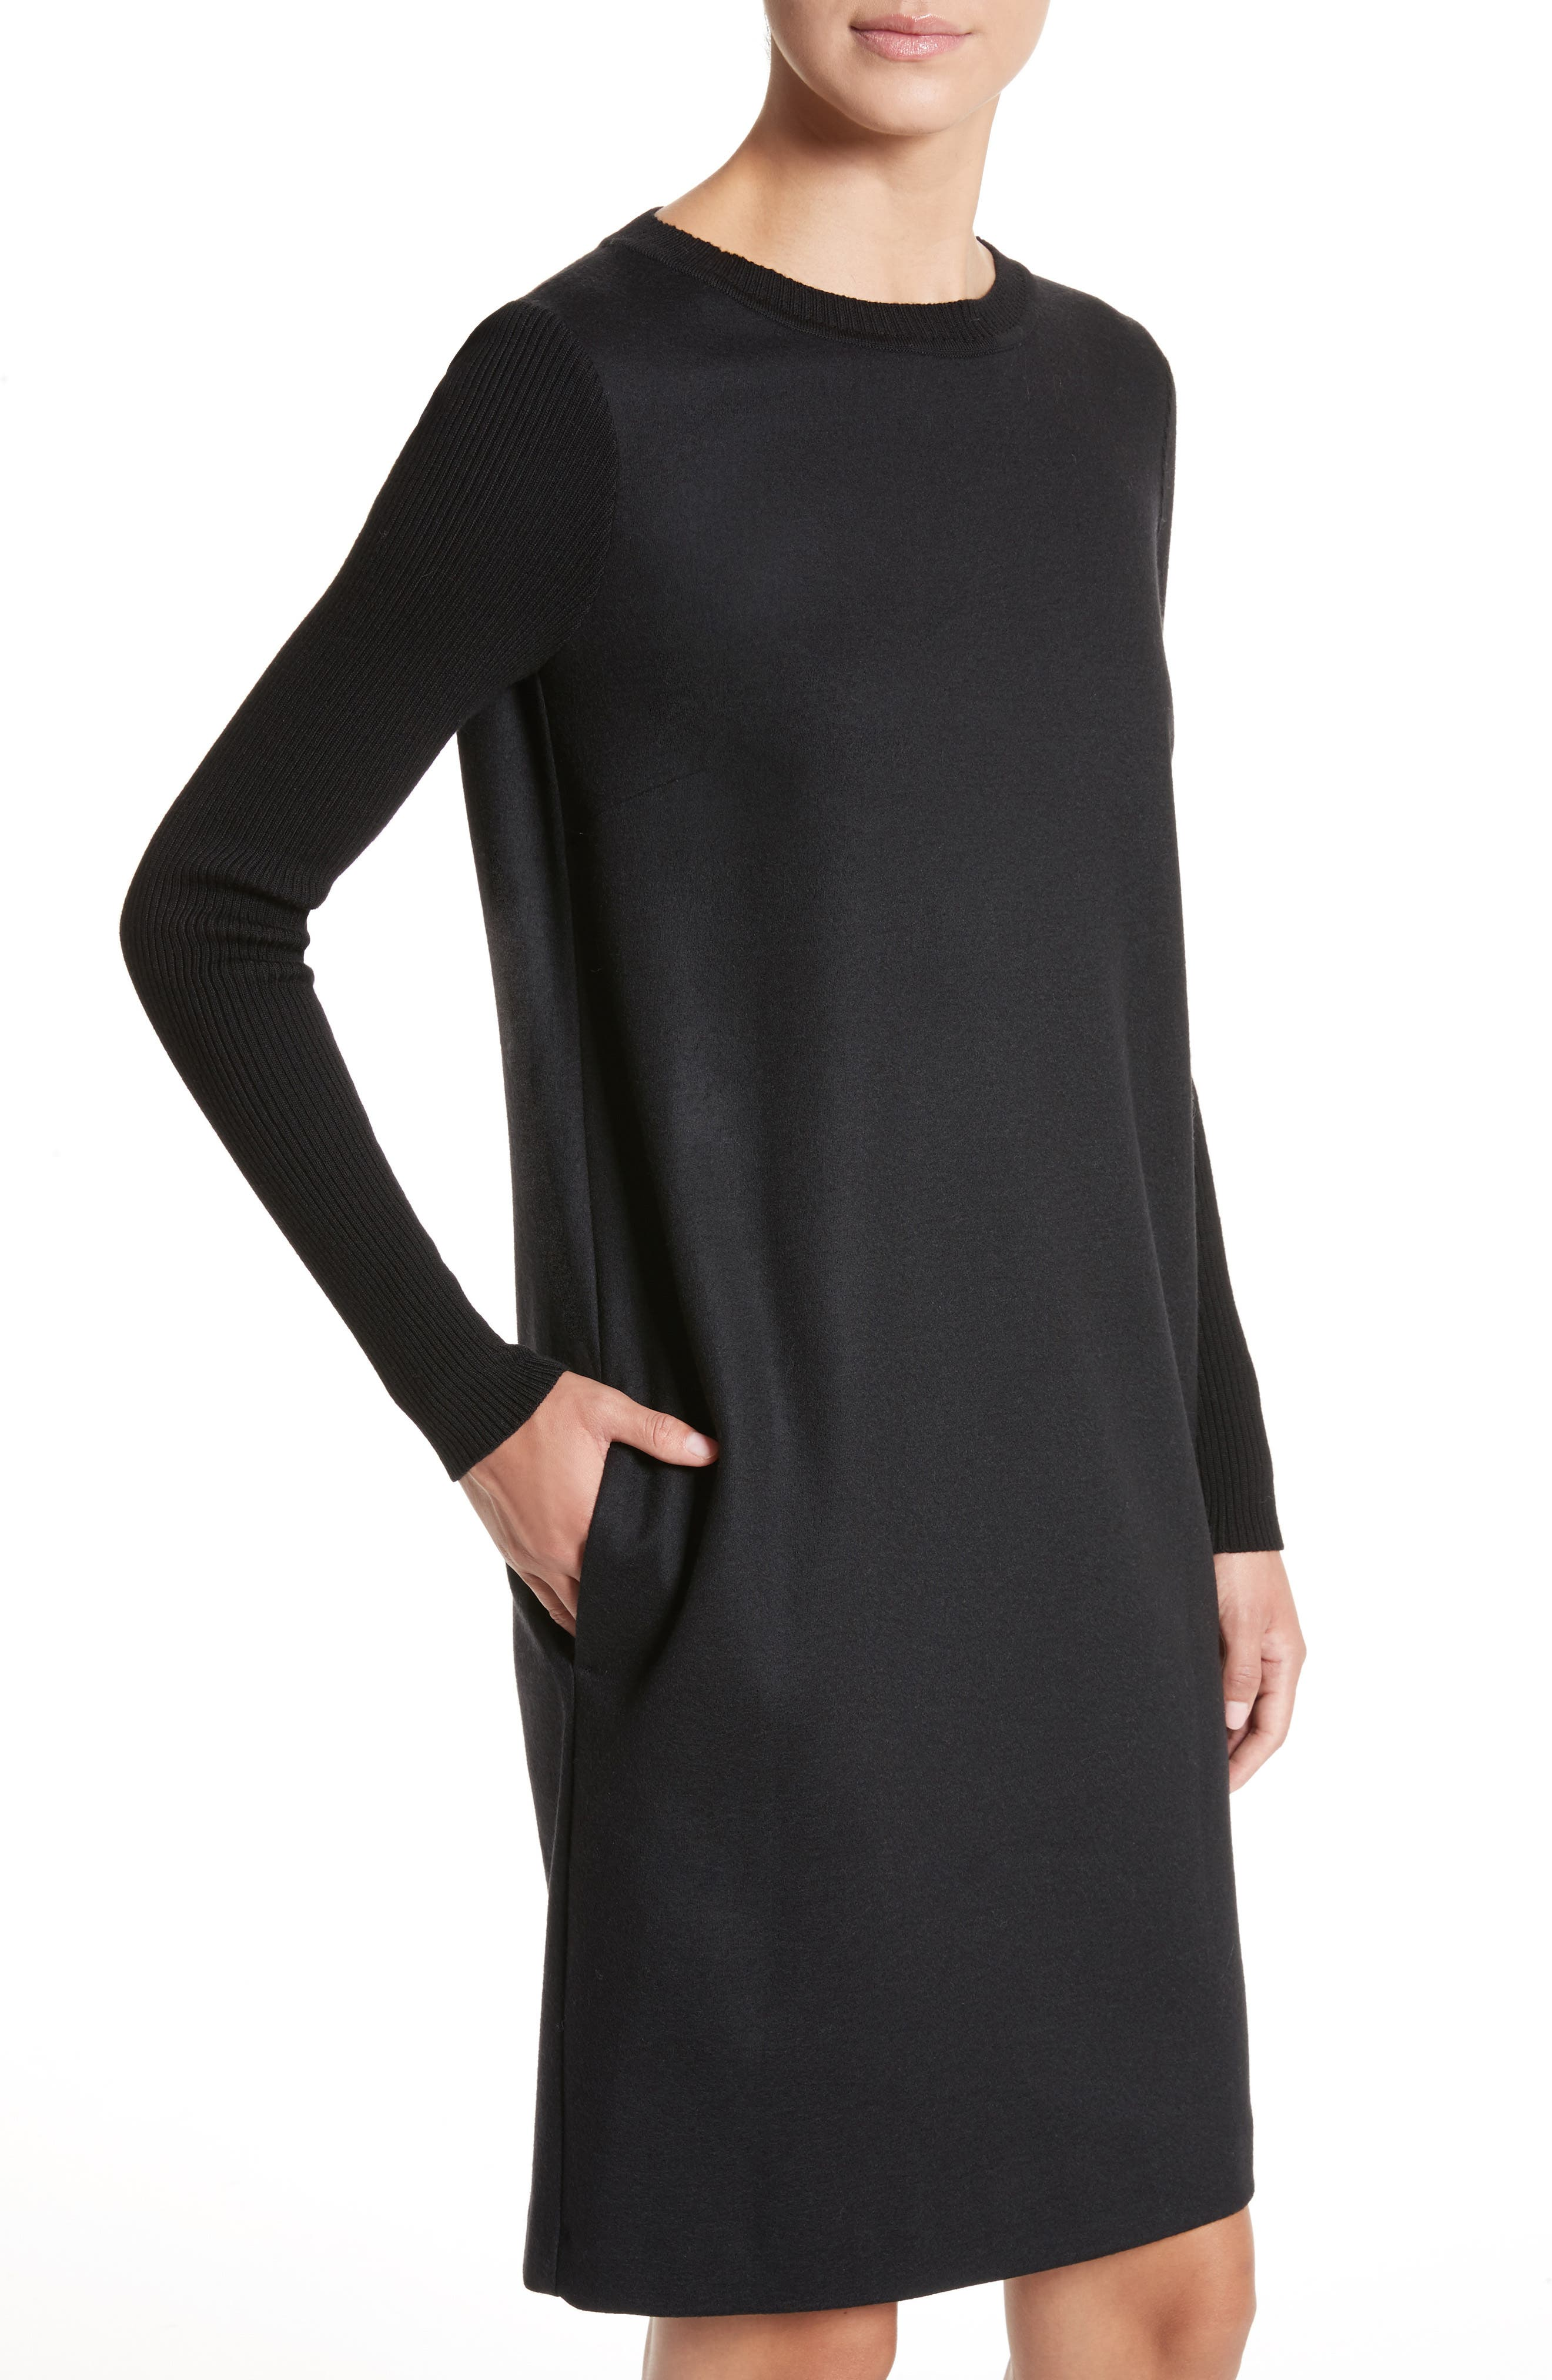 Cancan Wool Jersey Dress with Removable Knit Cowl,                             Alternate thumbnail 4, color,                             001